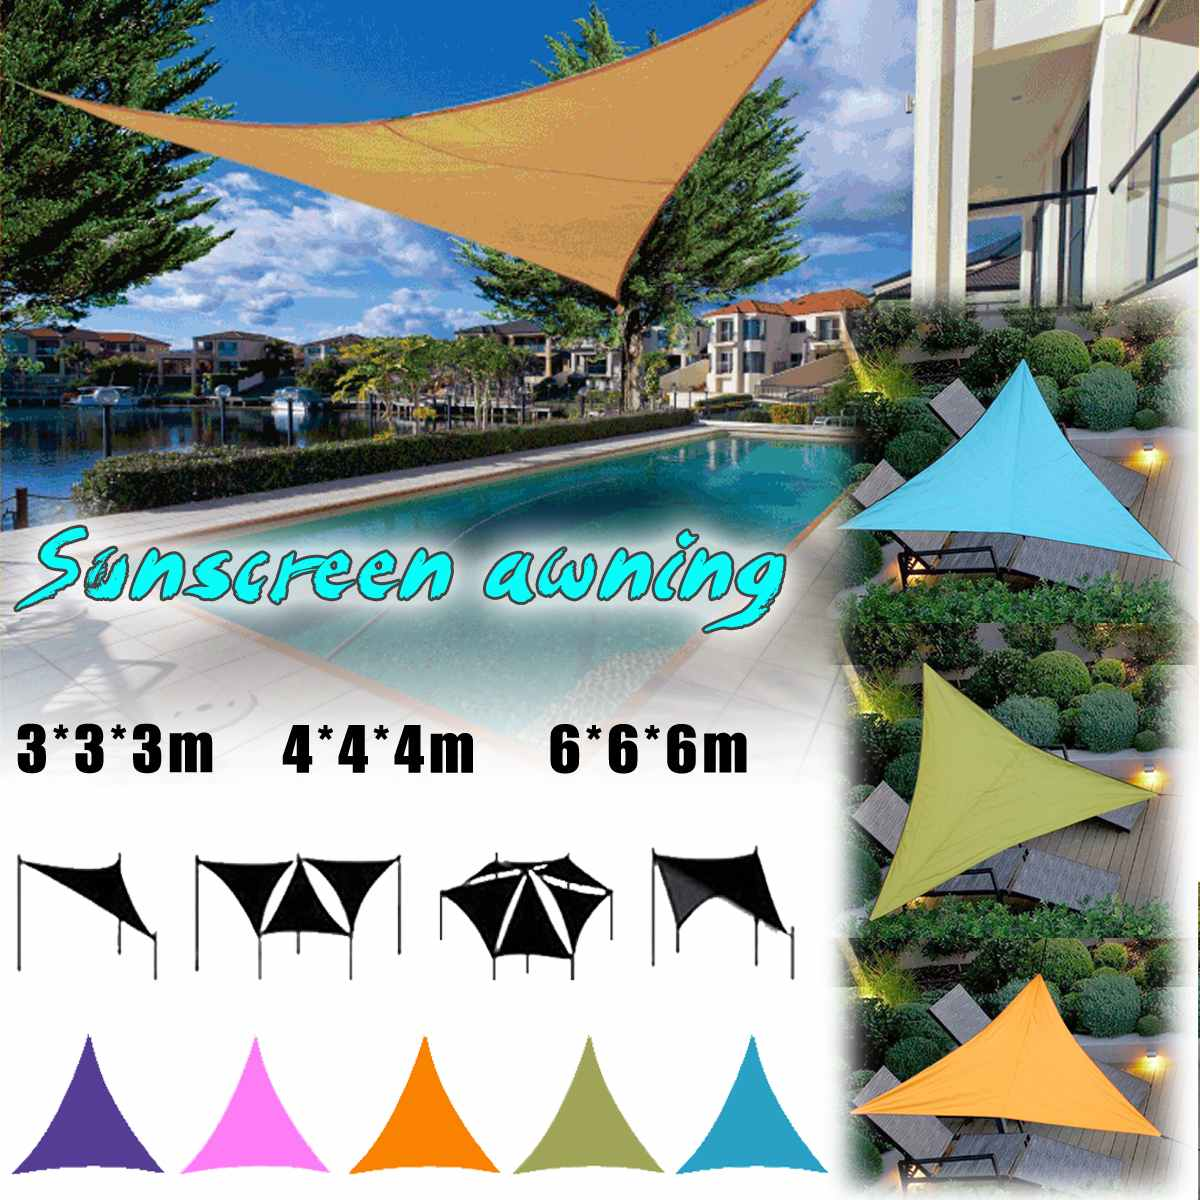 6x6x6m Large Waterproof Triangle Awning Shade Sail Sun Outdoor Waterproof Sun Shade Sail Garden Patio Pool Camping Picnic Tent6x6x6m Large Waterproof Triangle Awning Shade Sail Sun Outdoor Waterproof Sun Shade Sail Garden Patio Pool Camping Picnic Tent